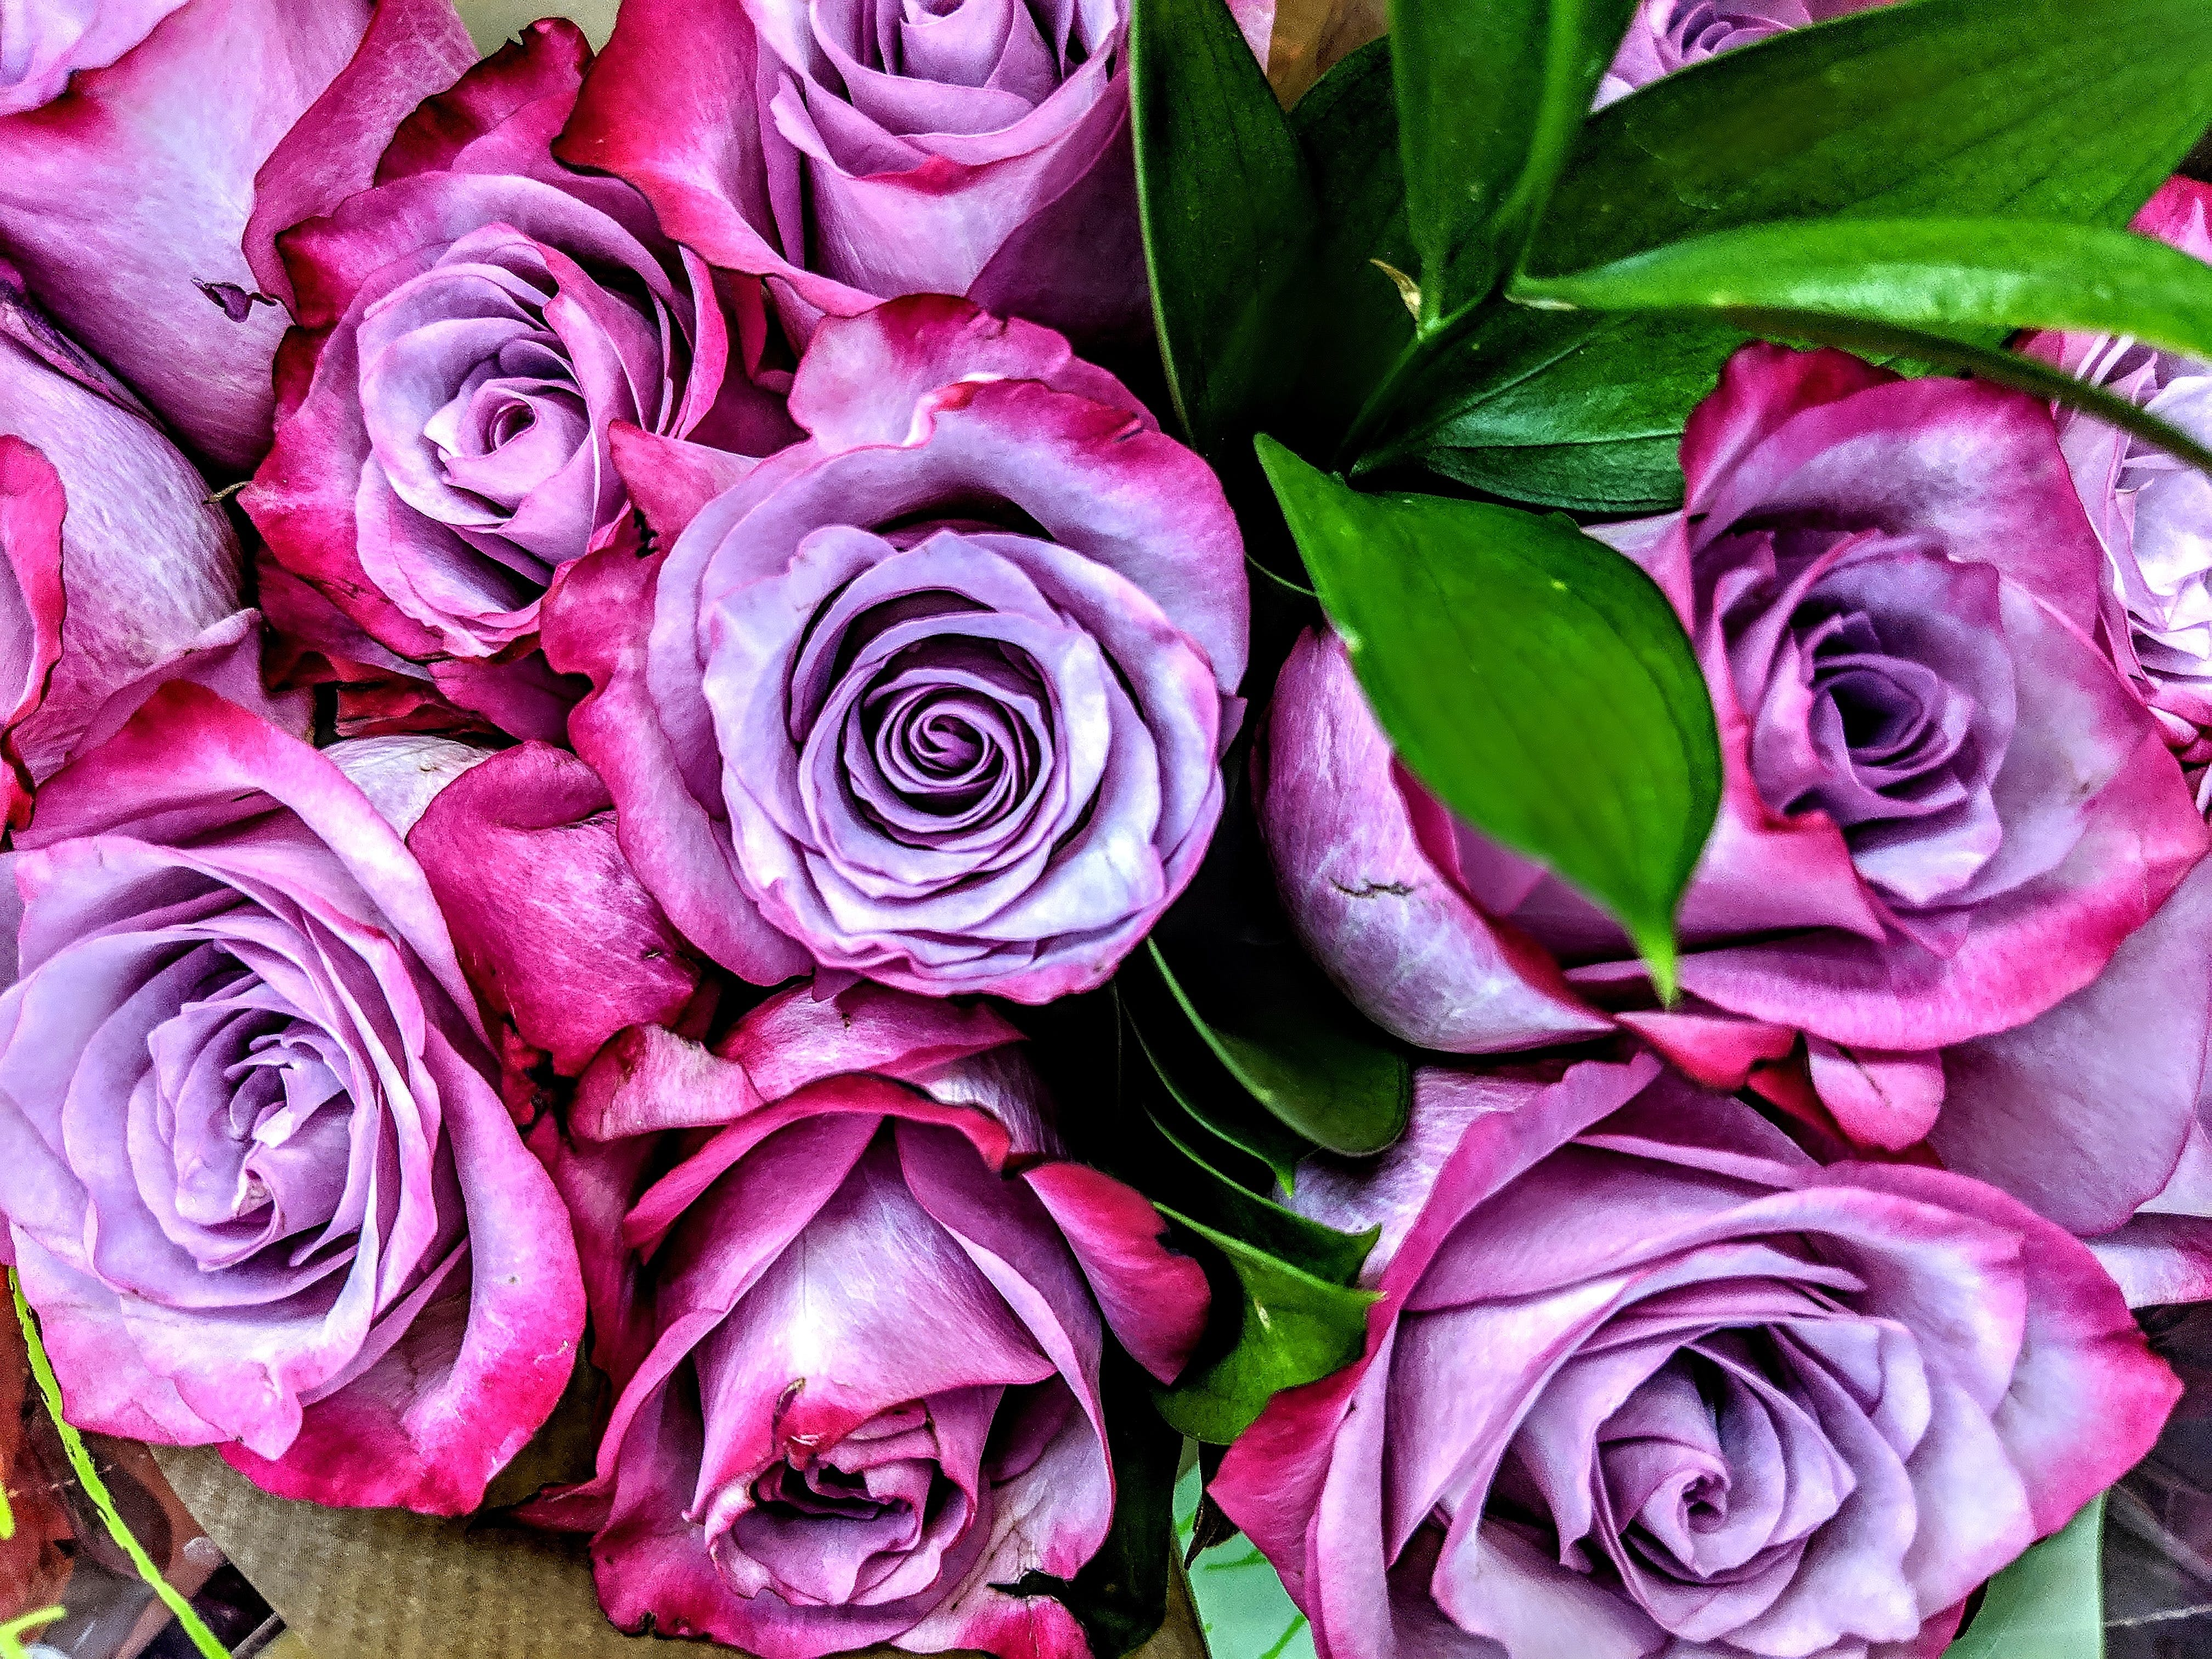 Free stock photo of pink roses, purple flowers, purple pink roses, Purple roses